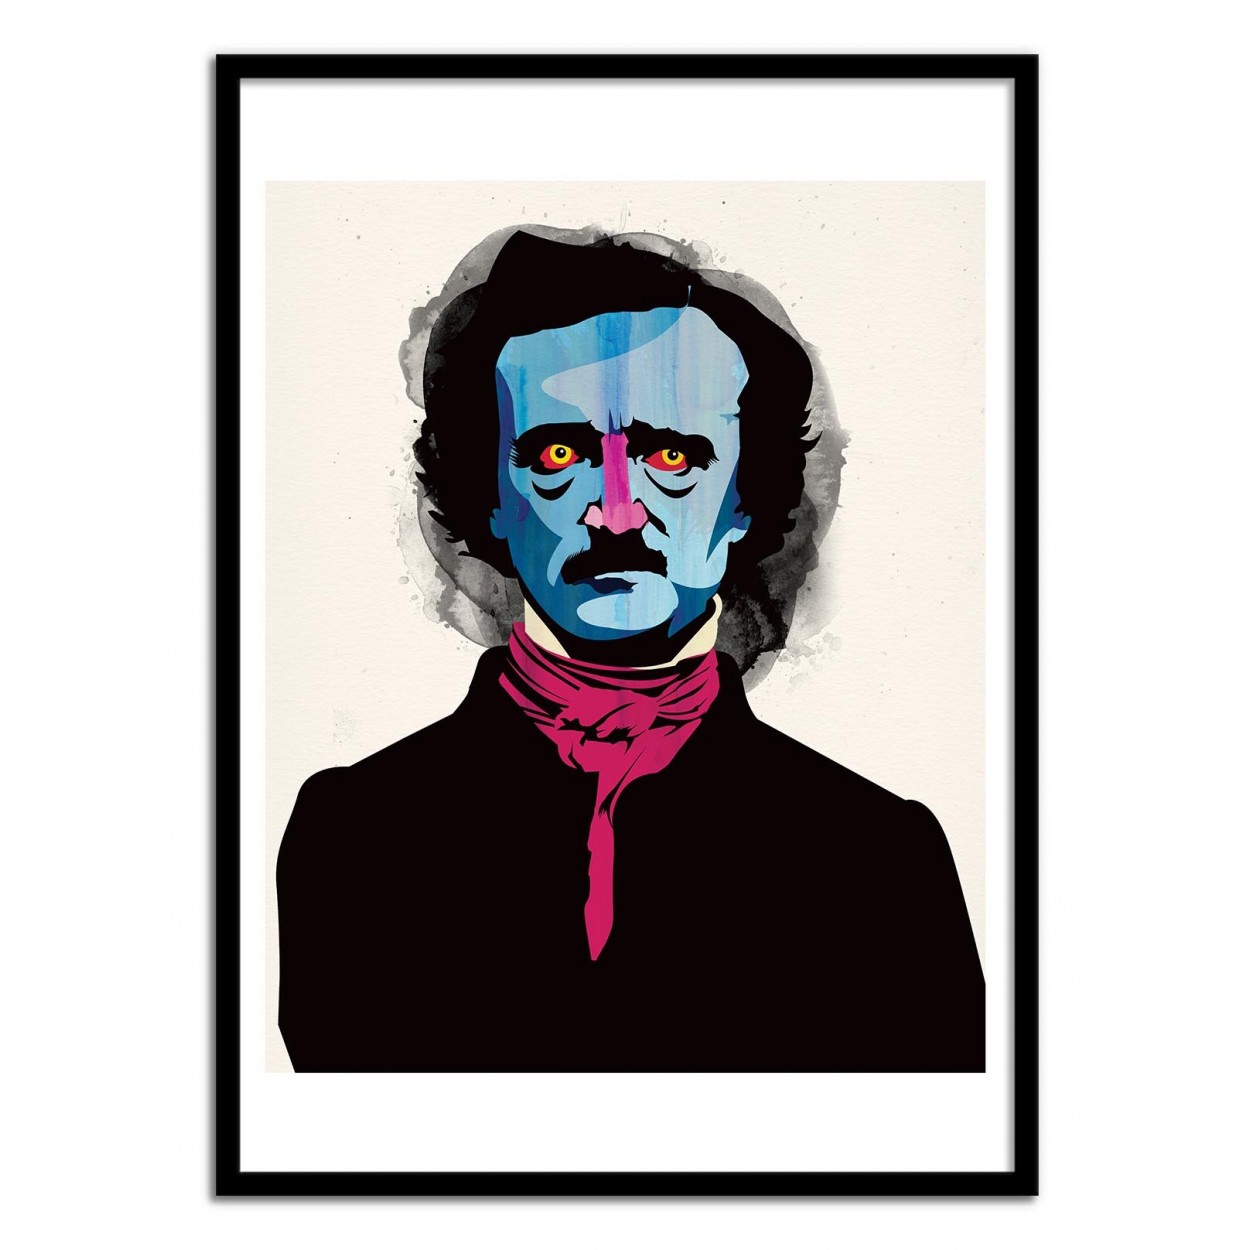 affiche d 39 art poster illustration portrait edgar allan poe artiste. Black Bedroom Furniture Sets. Home Design Ideas